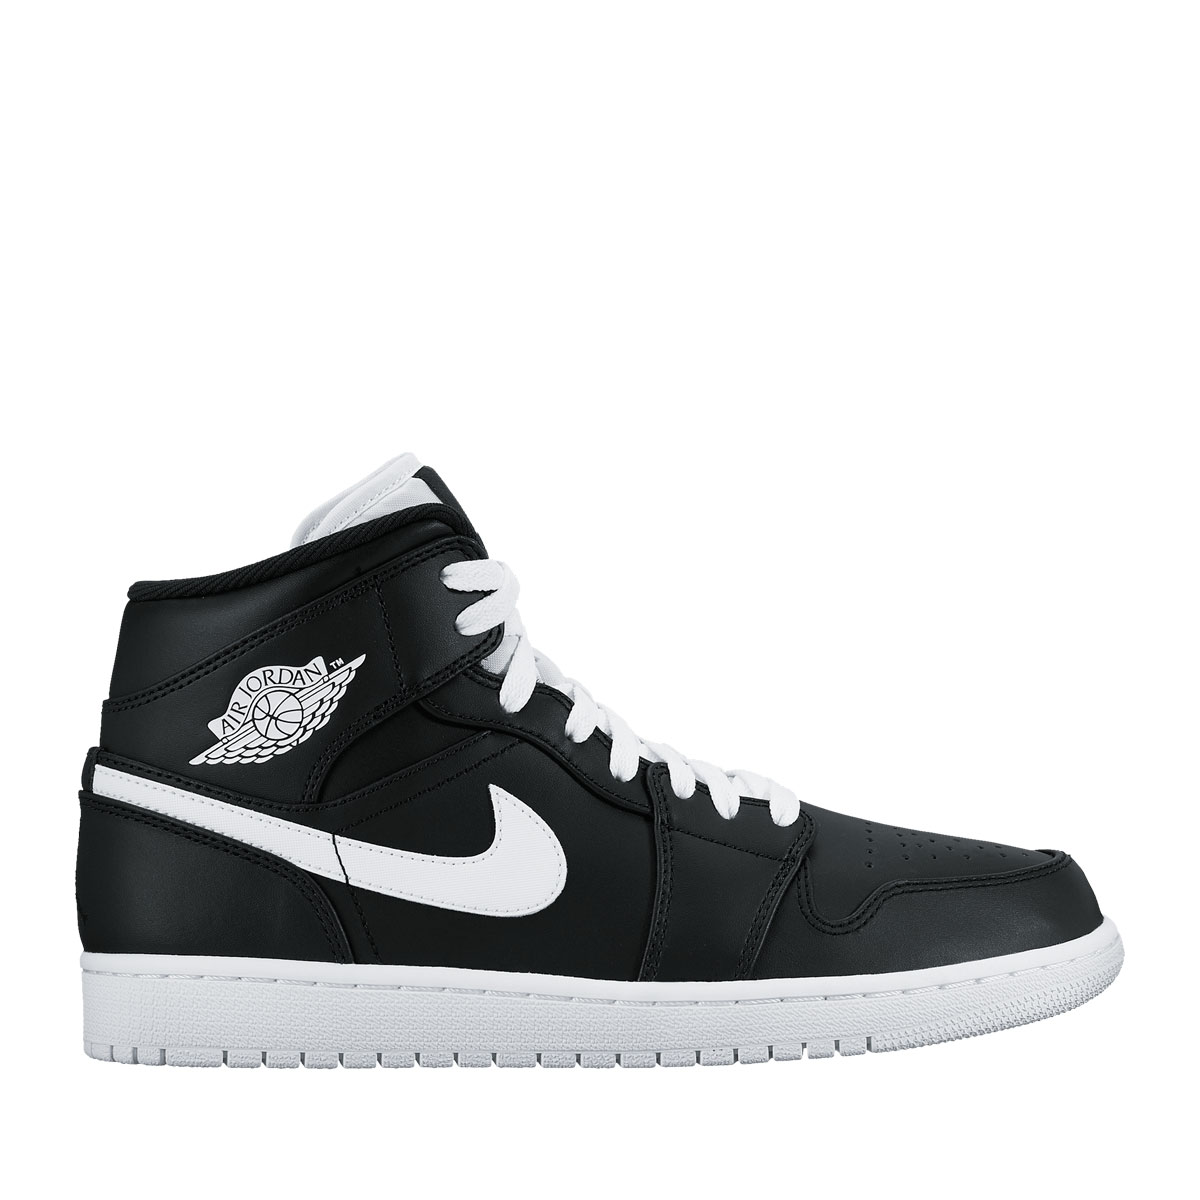 68f75933a19a16 MID cut version of Air Jordan 1 who it was first sig nature shoes of Michael  Jordan